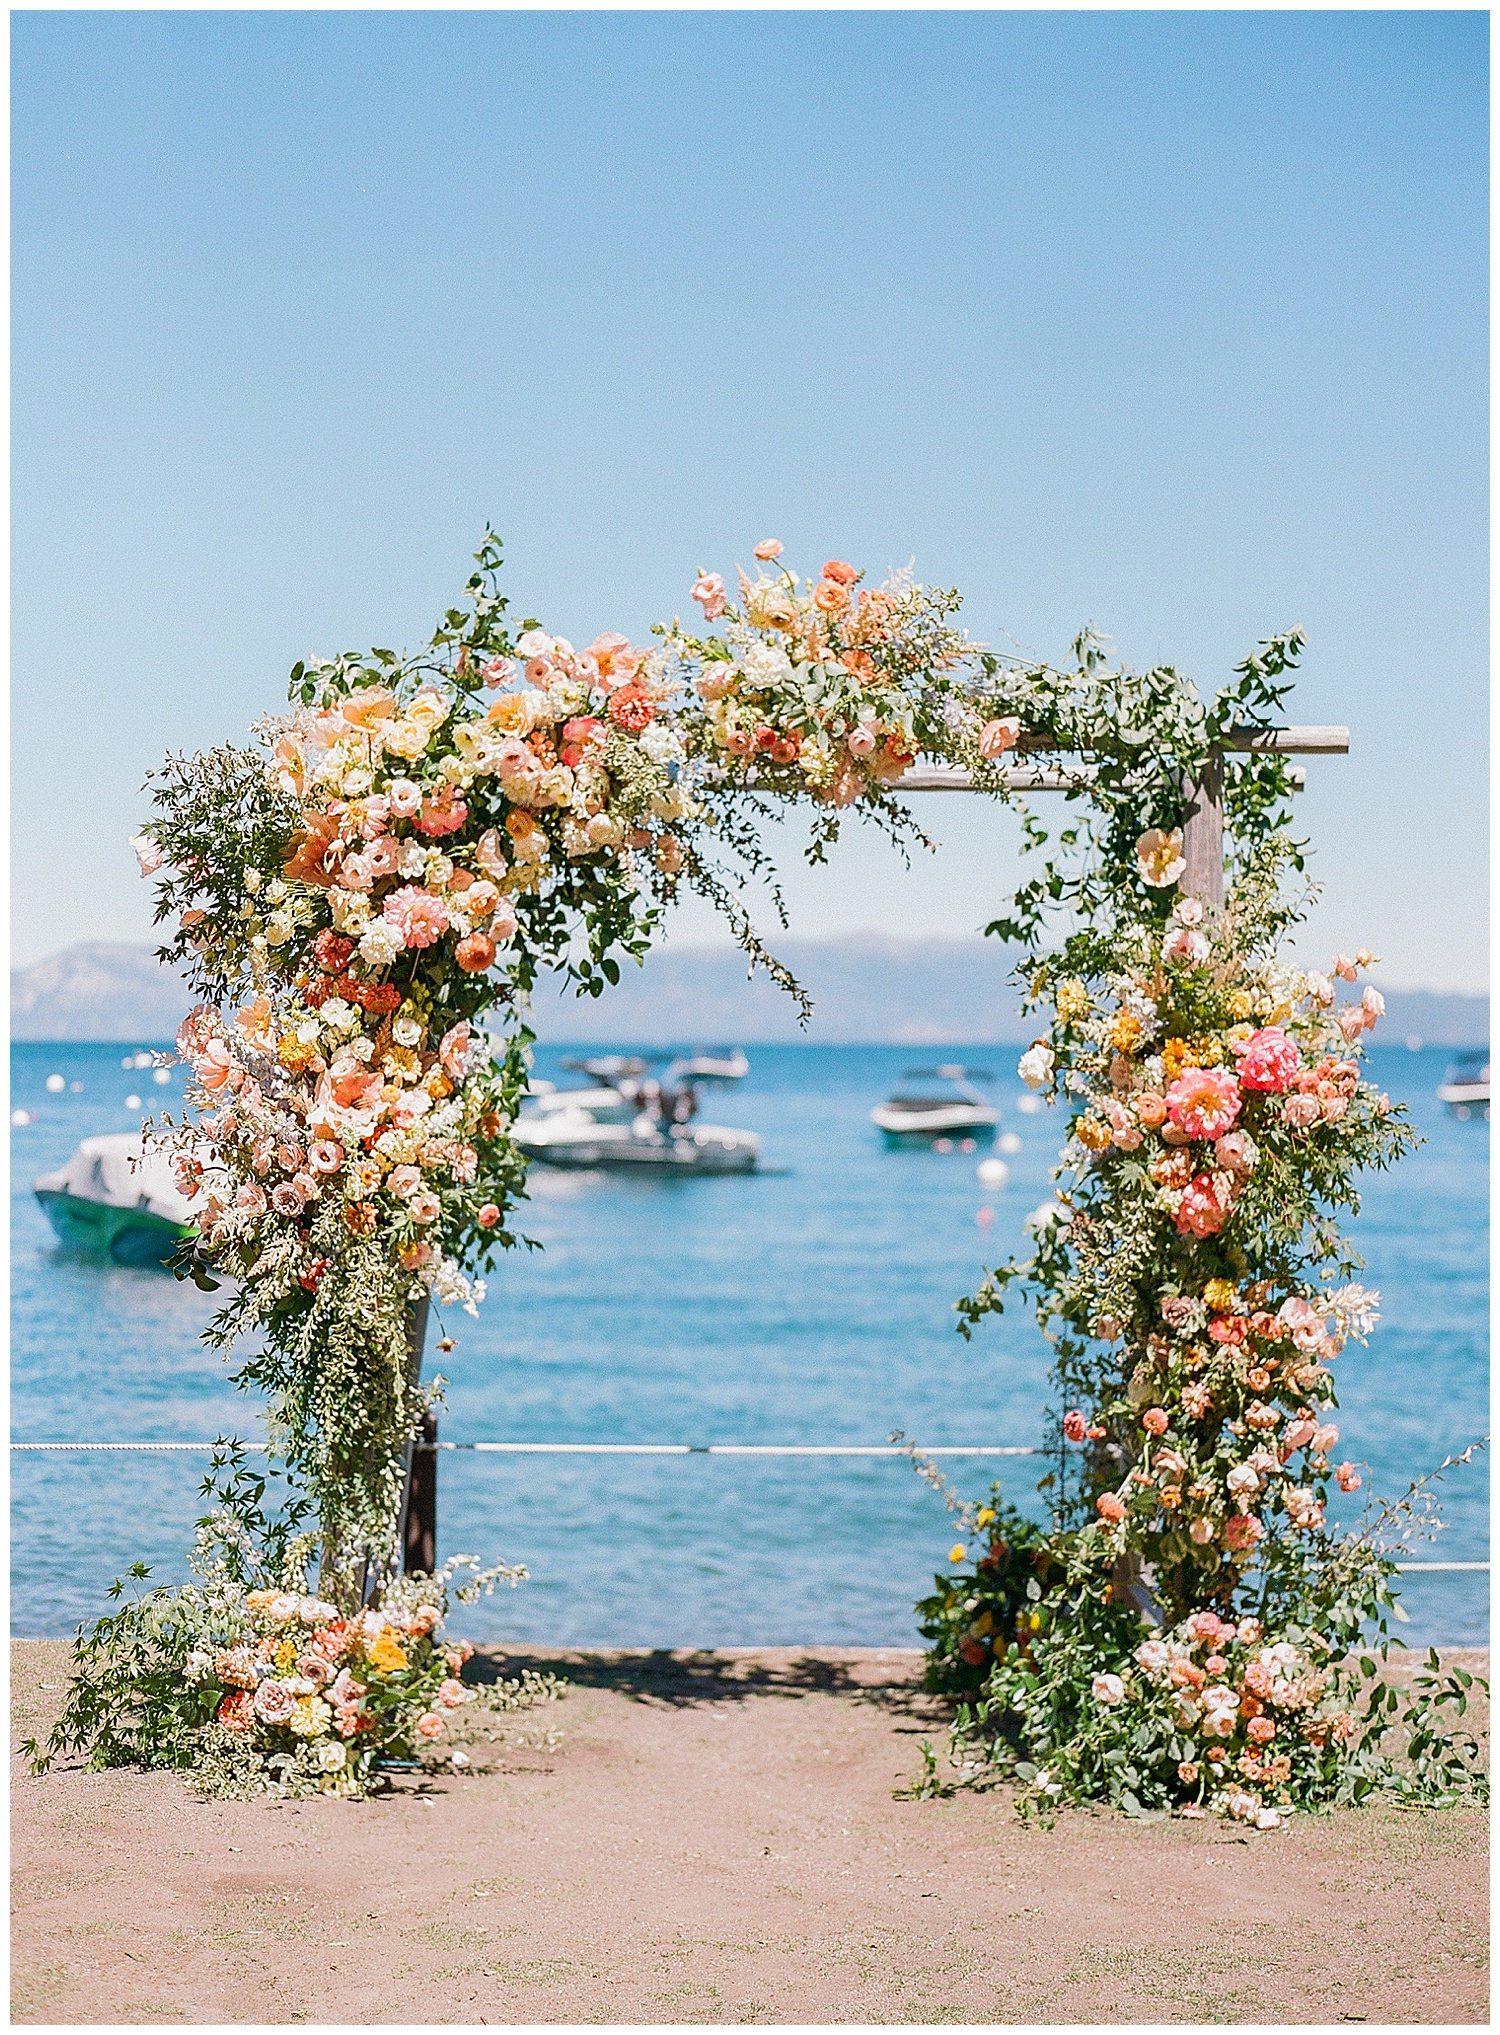 Janine_Licare_Photography_San_Francisco_Wedding_Photographer_Lake_Tahoe_West_Shore_Cafe_Colorful_Summer_0049.jpg